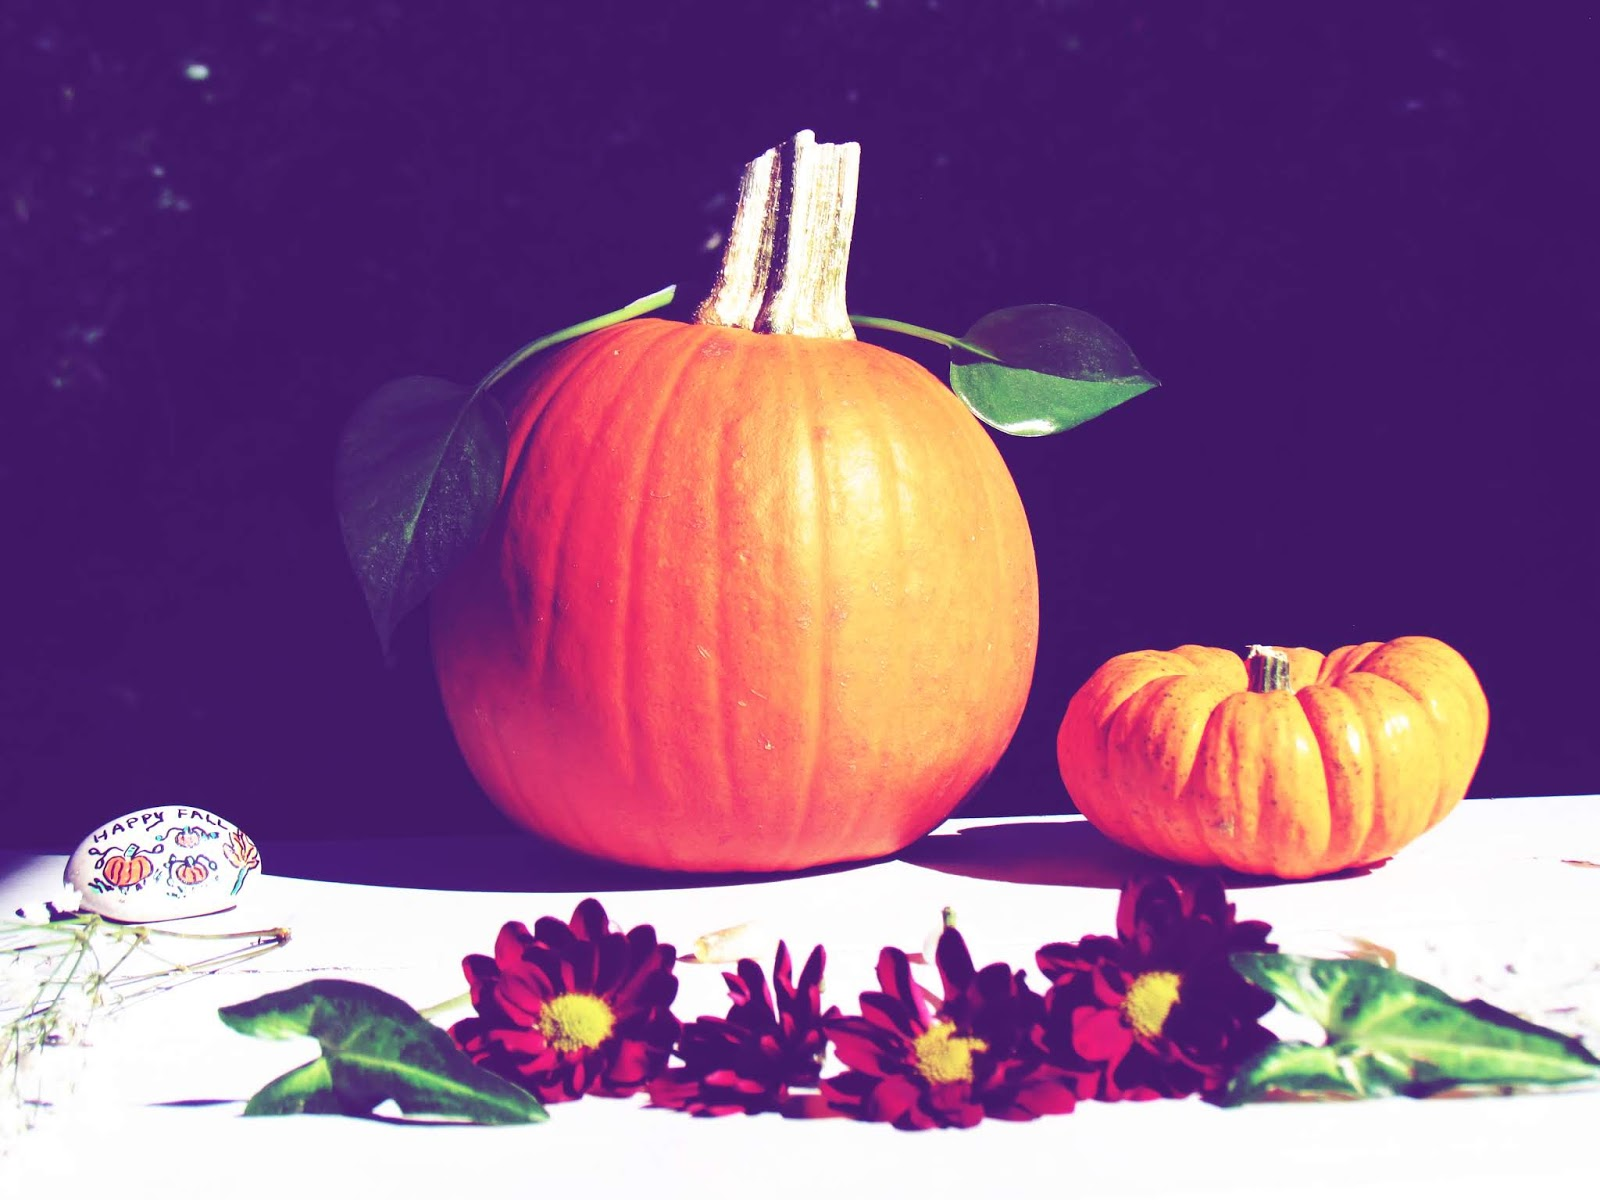 Pumpkin Art Display Martha Stewart Designs For Fall Celebrations